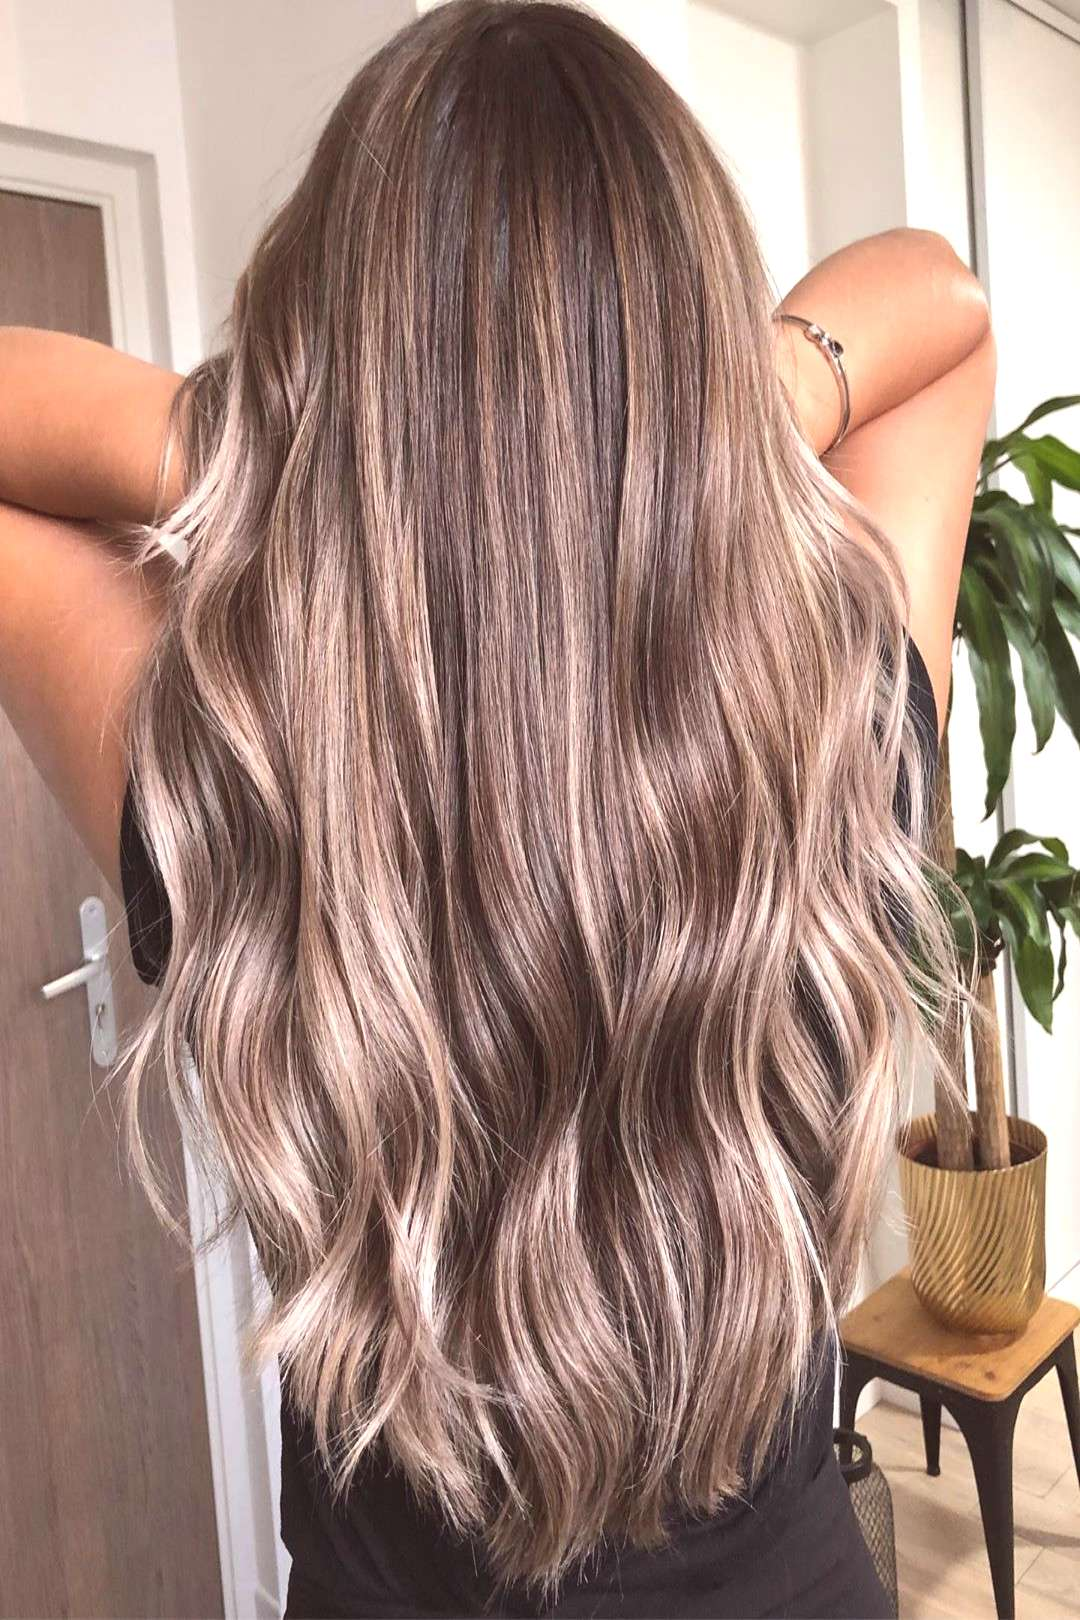 T R A N S F O R M A T I O N Avant/Après ombré avec contouring Coupe gloss soin... T R A N S F O R